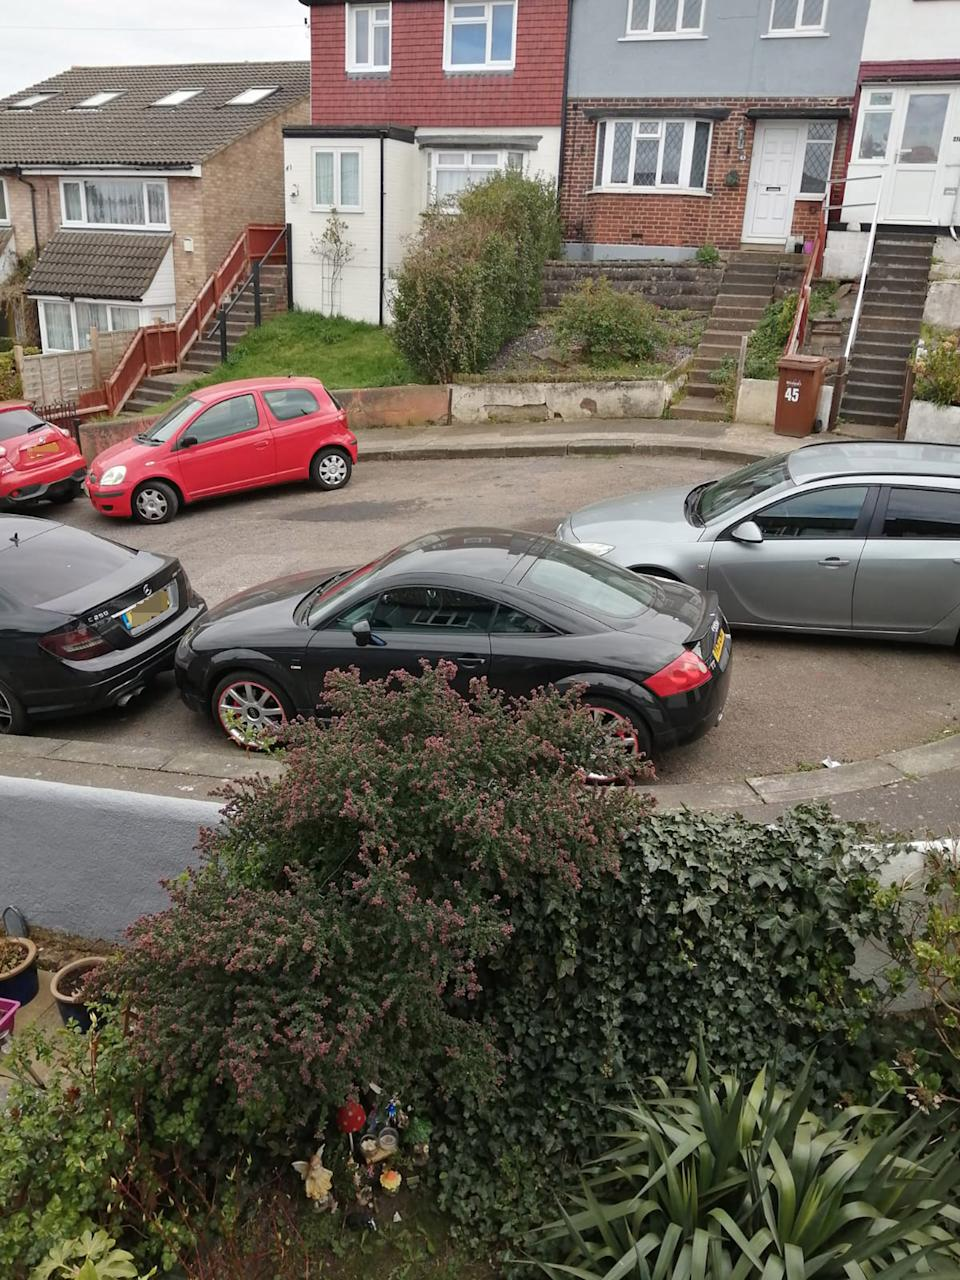 The couple say their car has been deliberately blocked in in the past. (Caters)